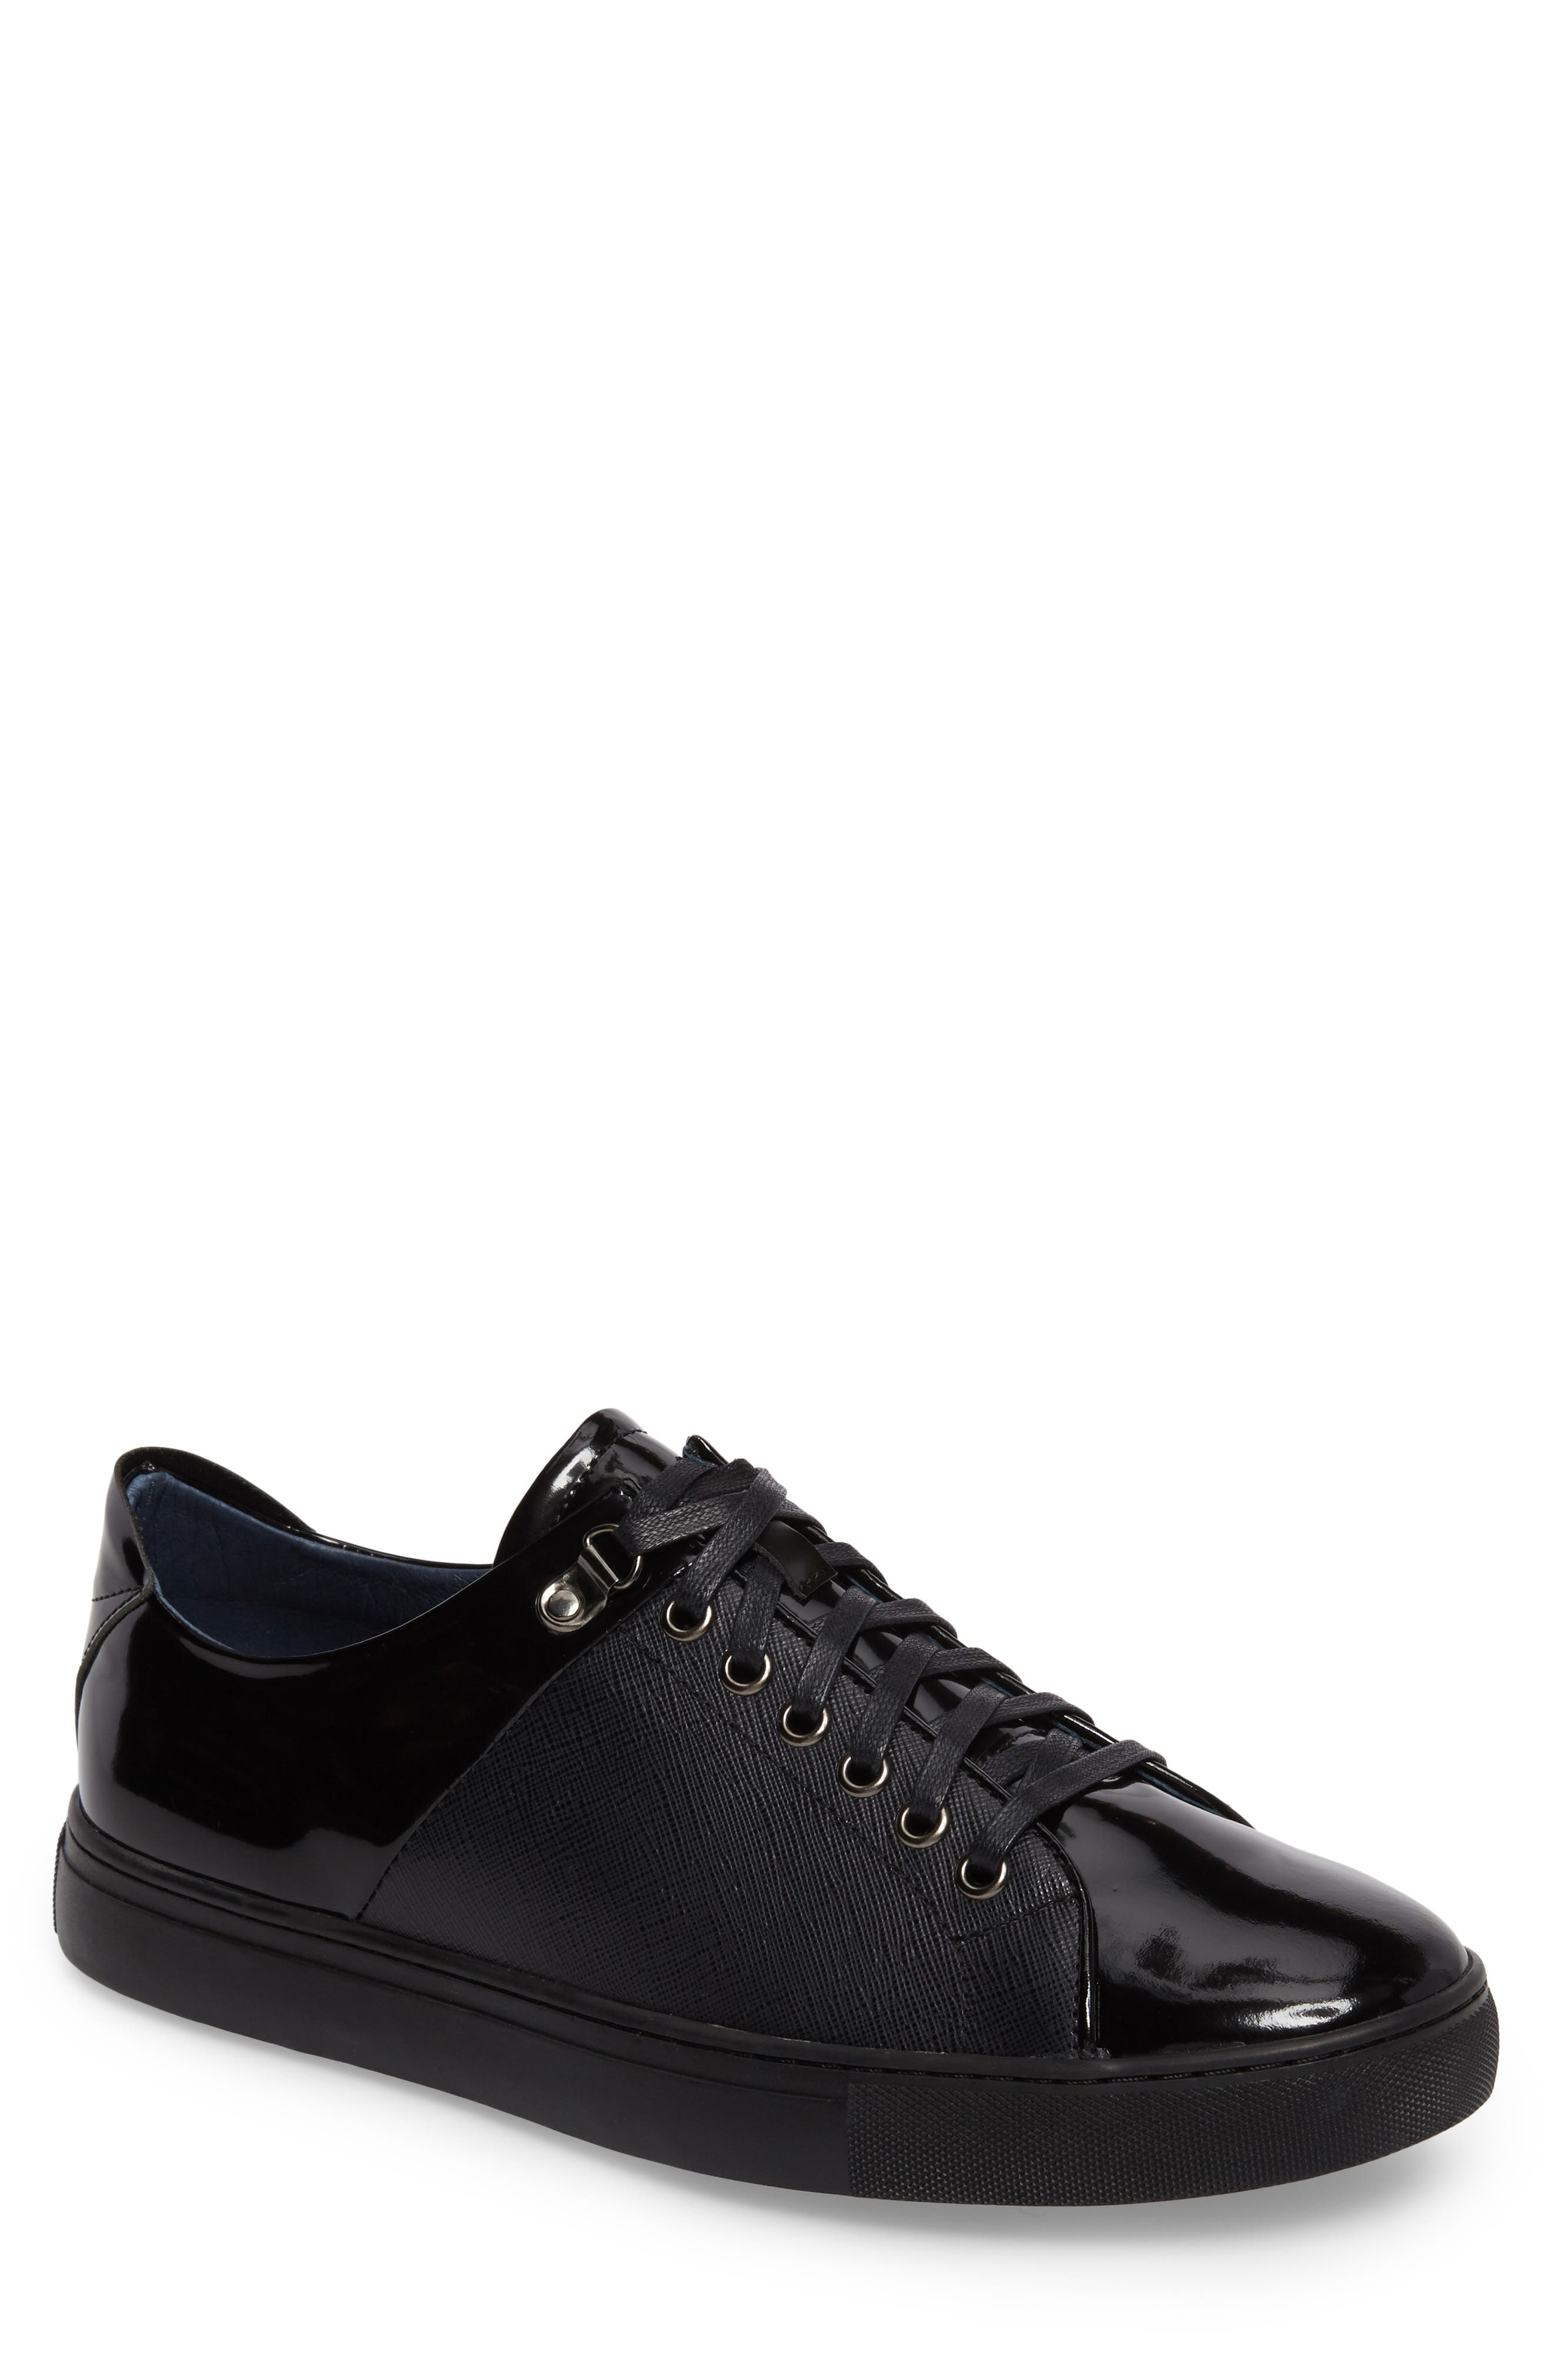 Quidor Low Top Sneaker,                             Main thumbnail 1, color,                             Black Leather